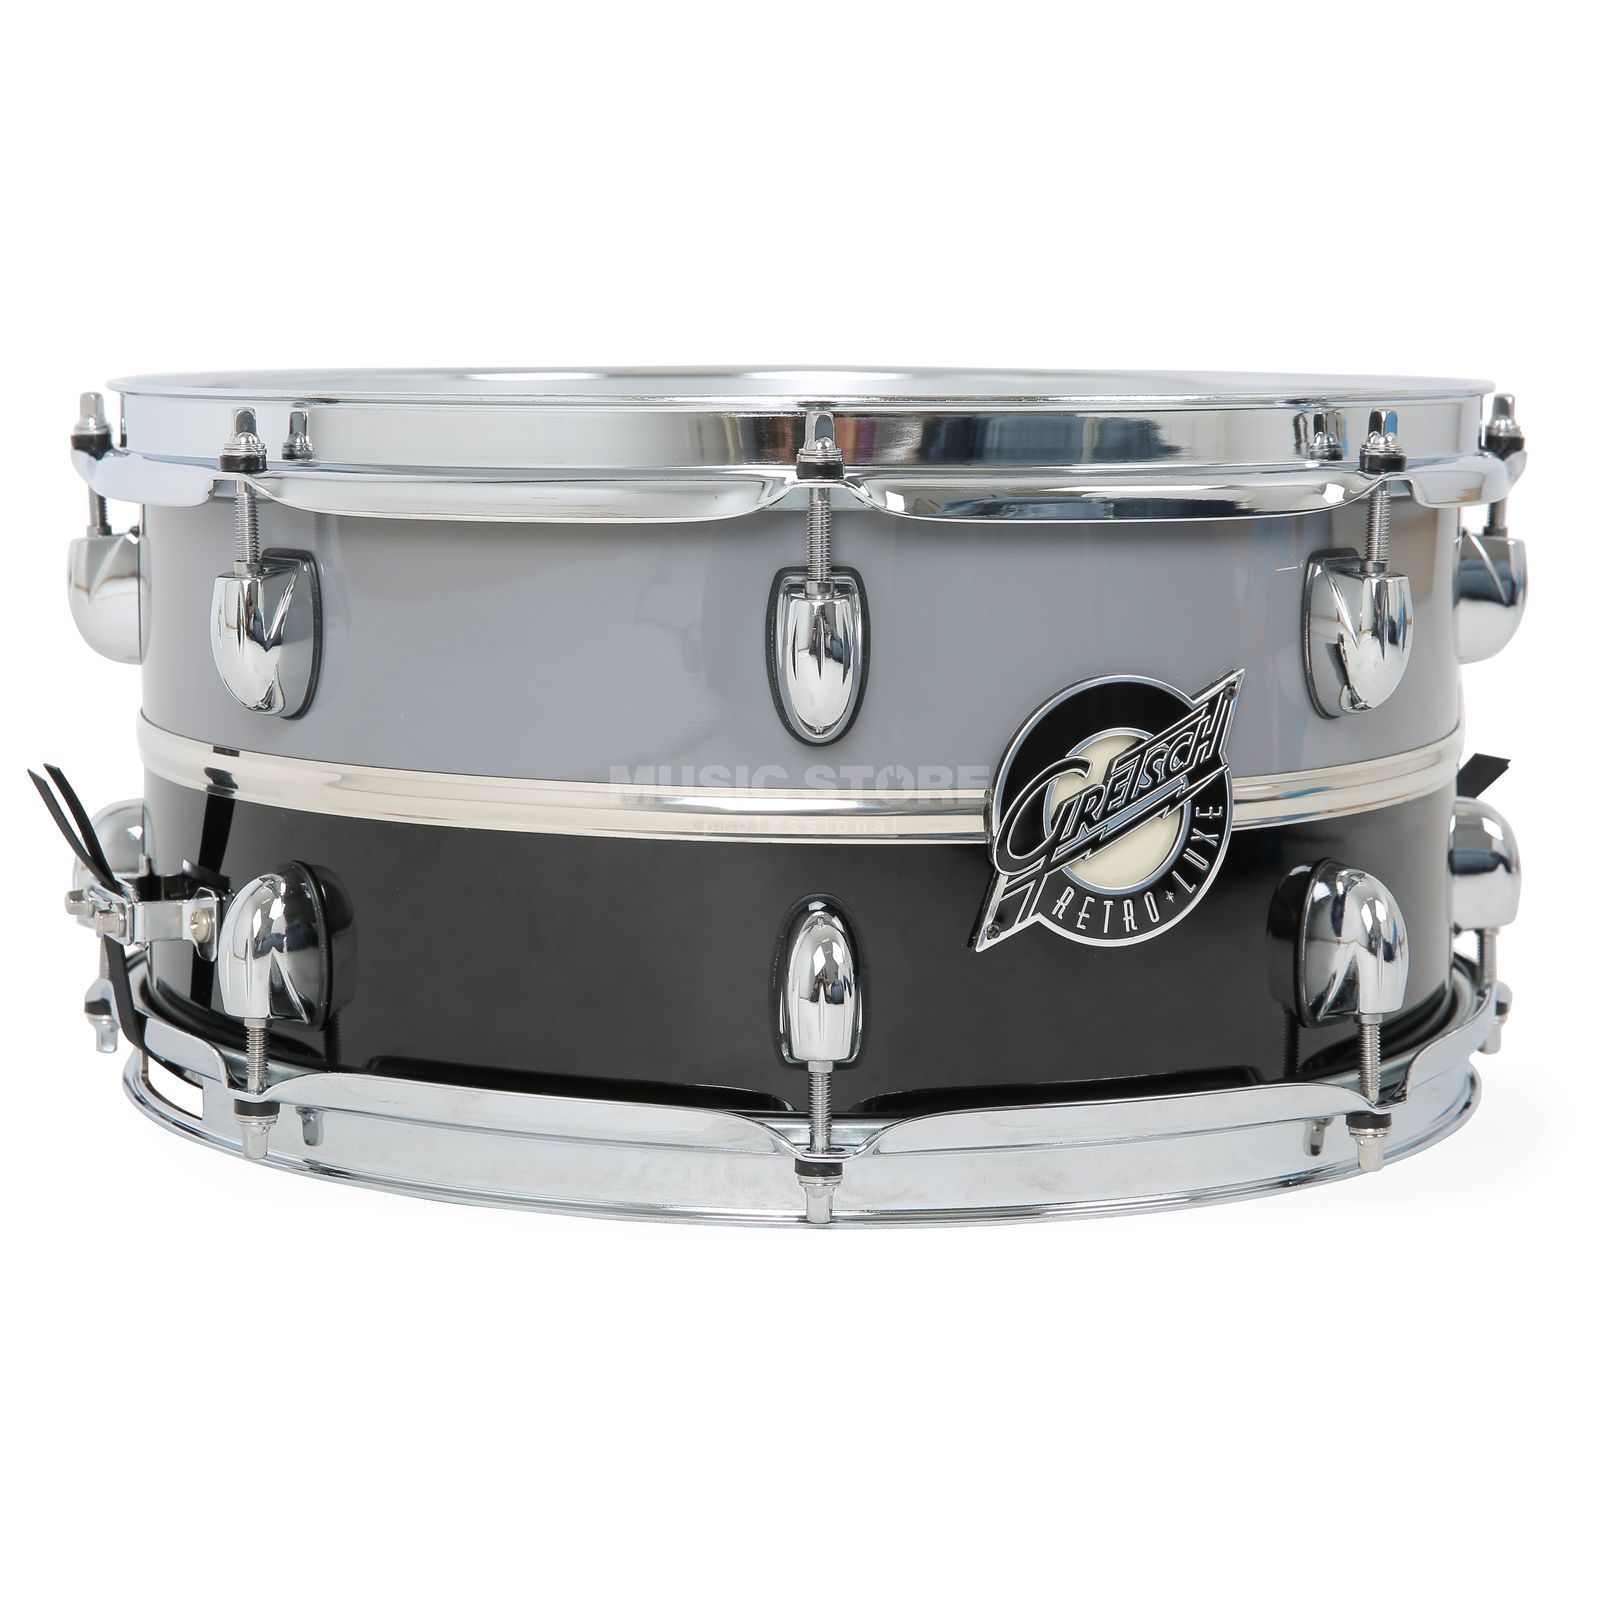 "Gretsch Retro-Lux Snare 14""x6,5"", Pewter/Black, Chrom Band Produktbild"